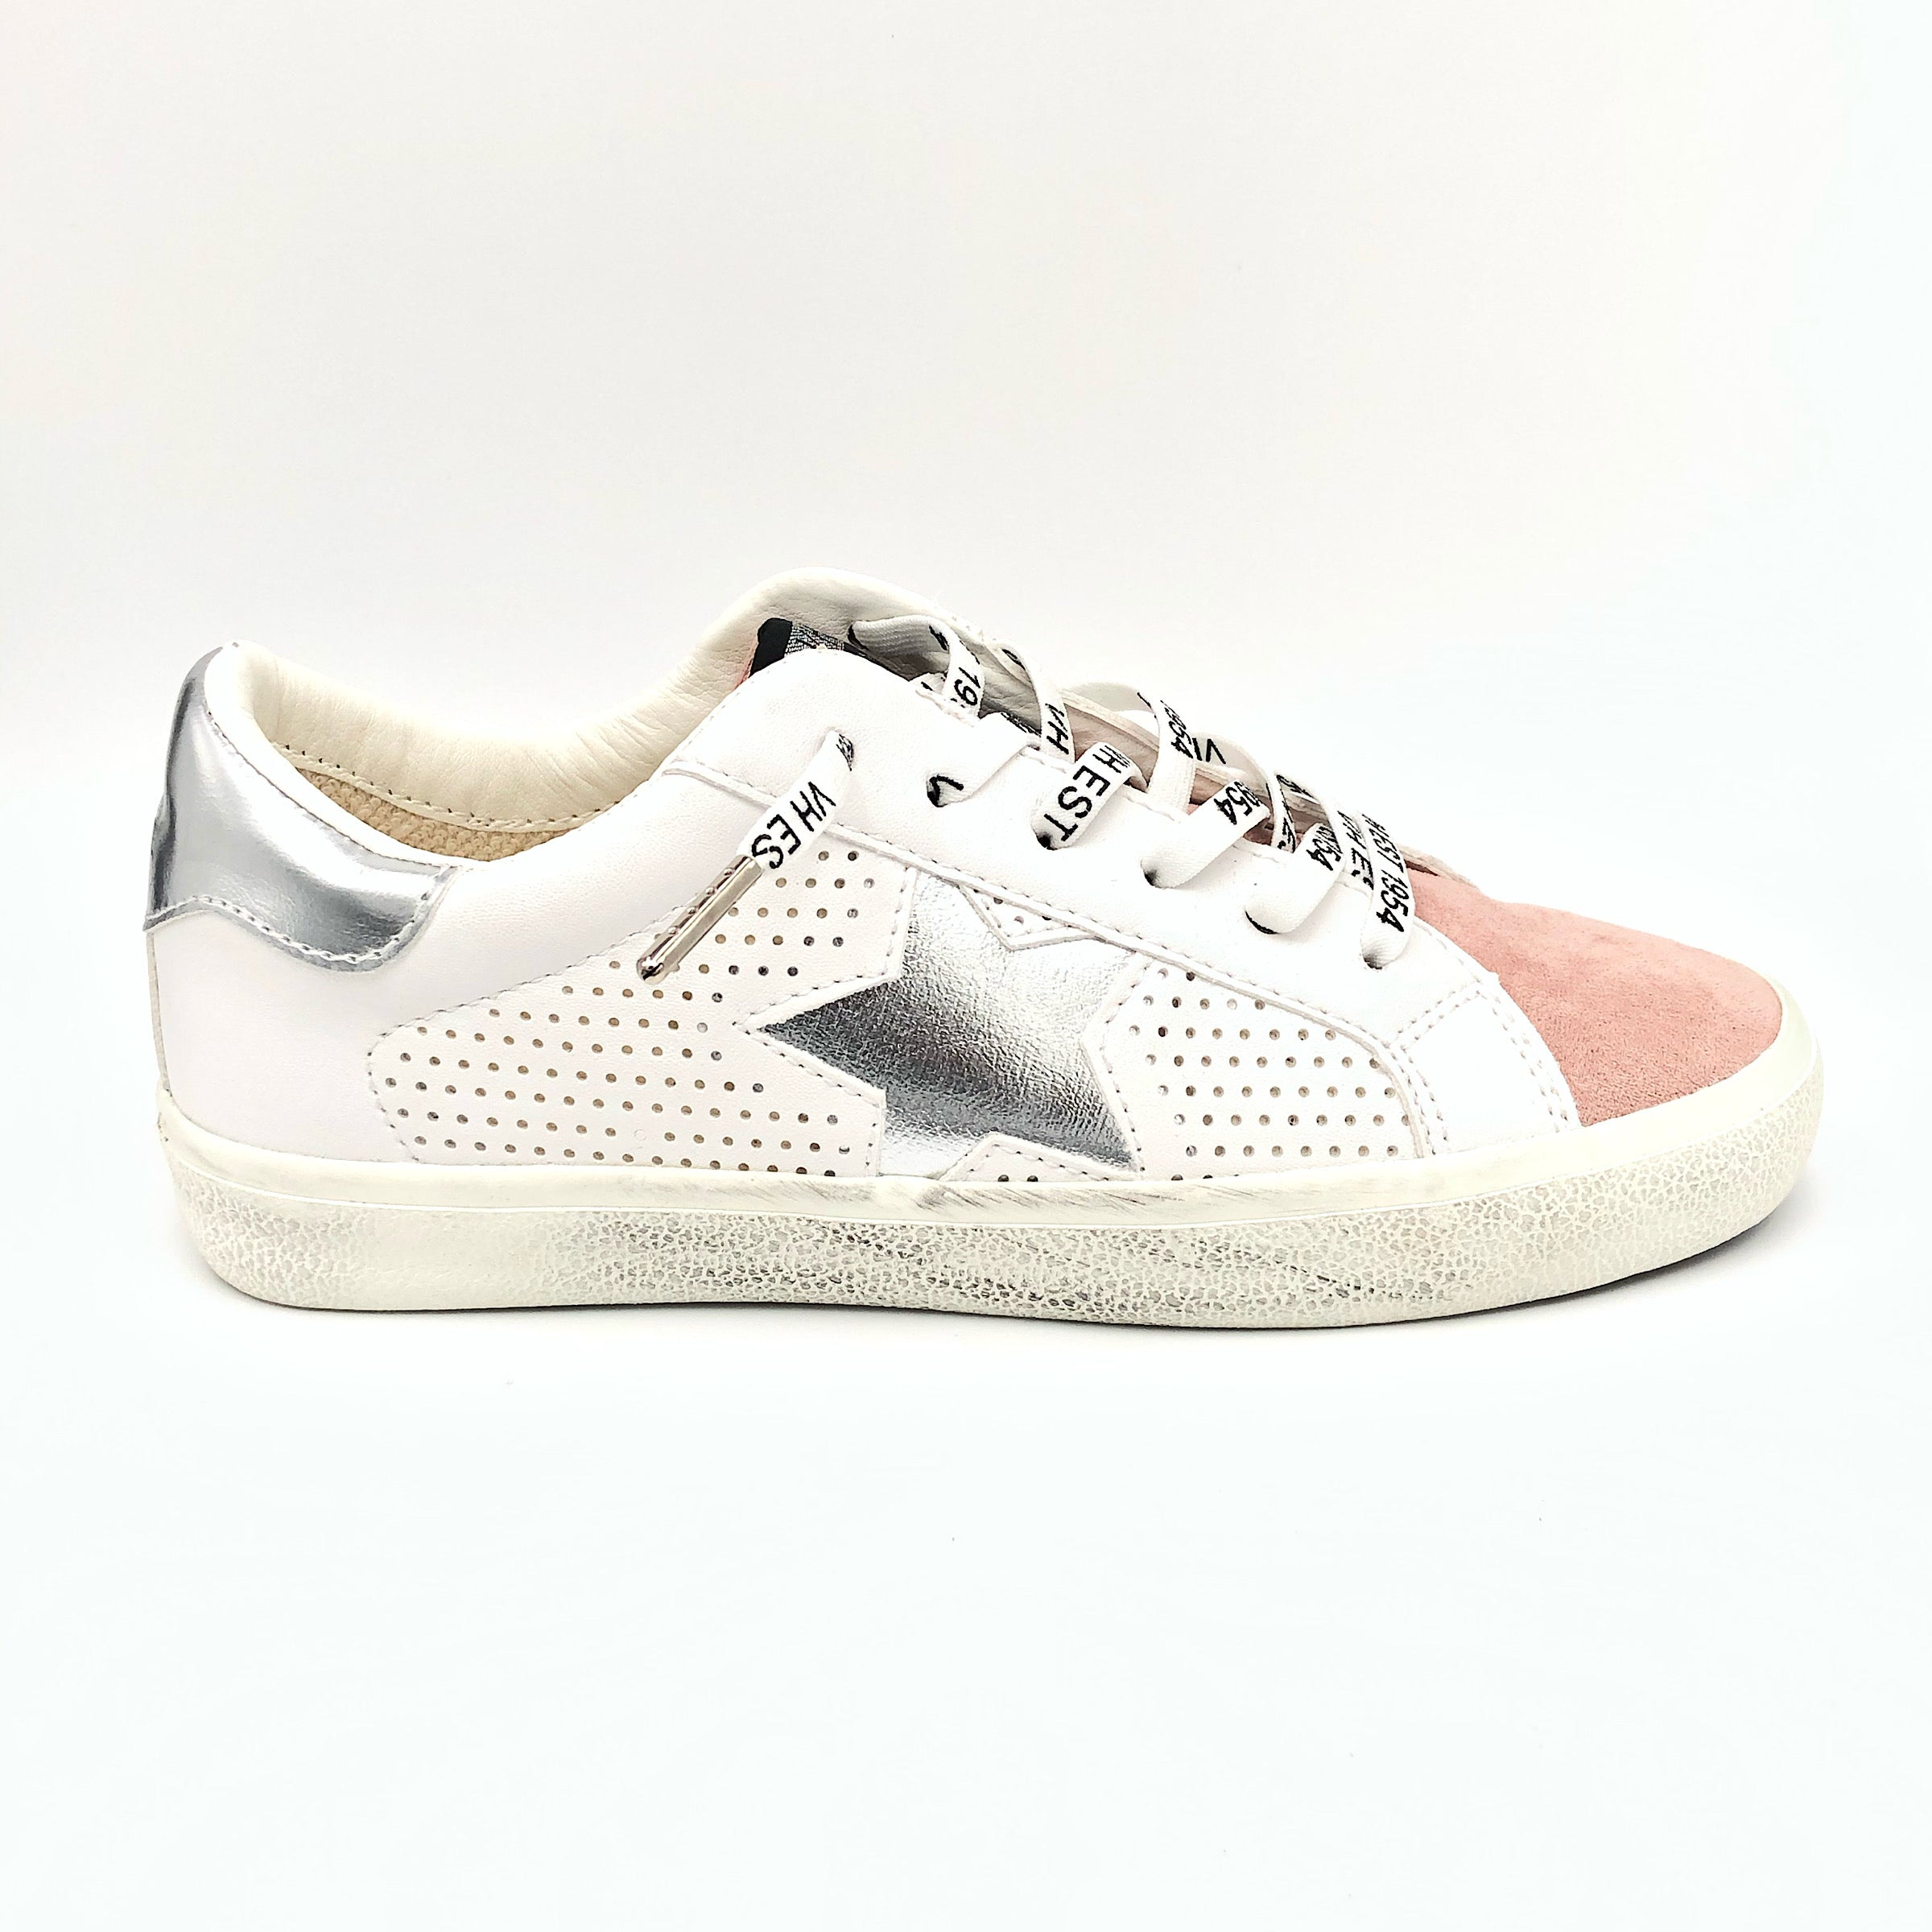 The Star Perforated Lace Sneaker in White Pewter